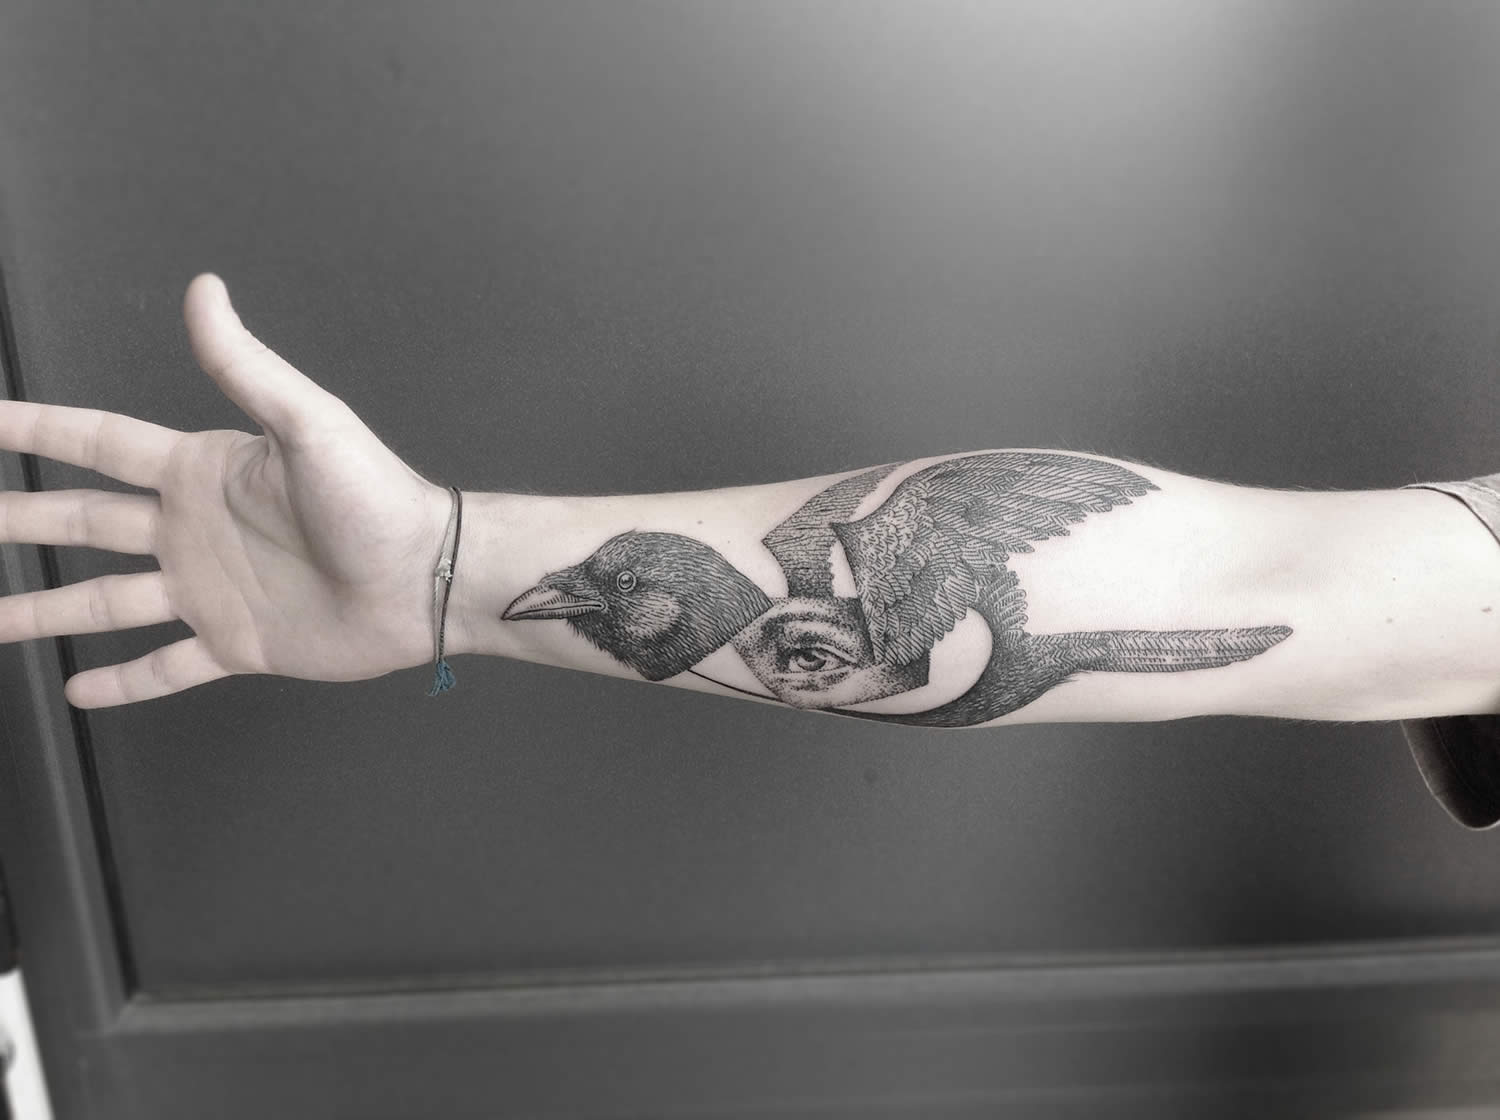 bird with eye belly, unique tattoo on arm by Ottorino D' Ambra